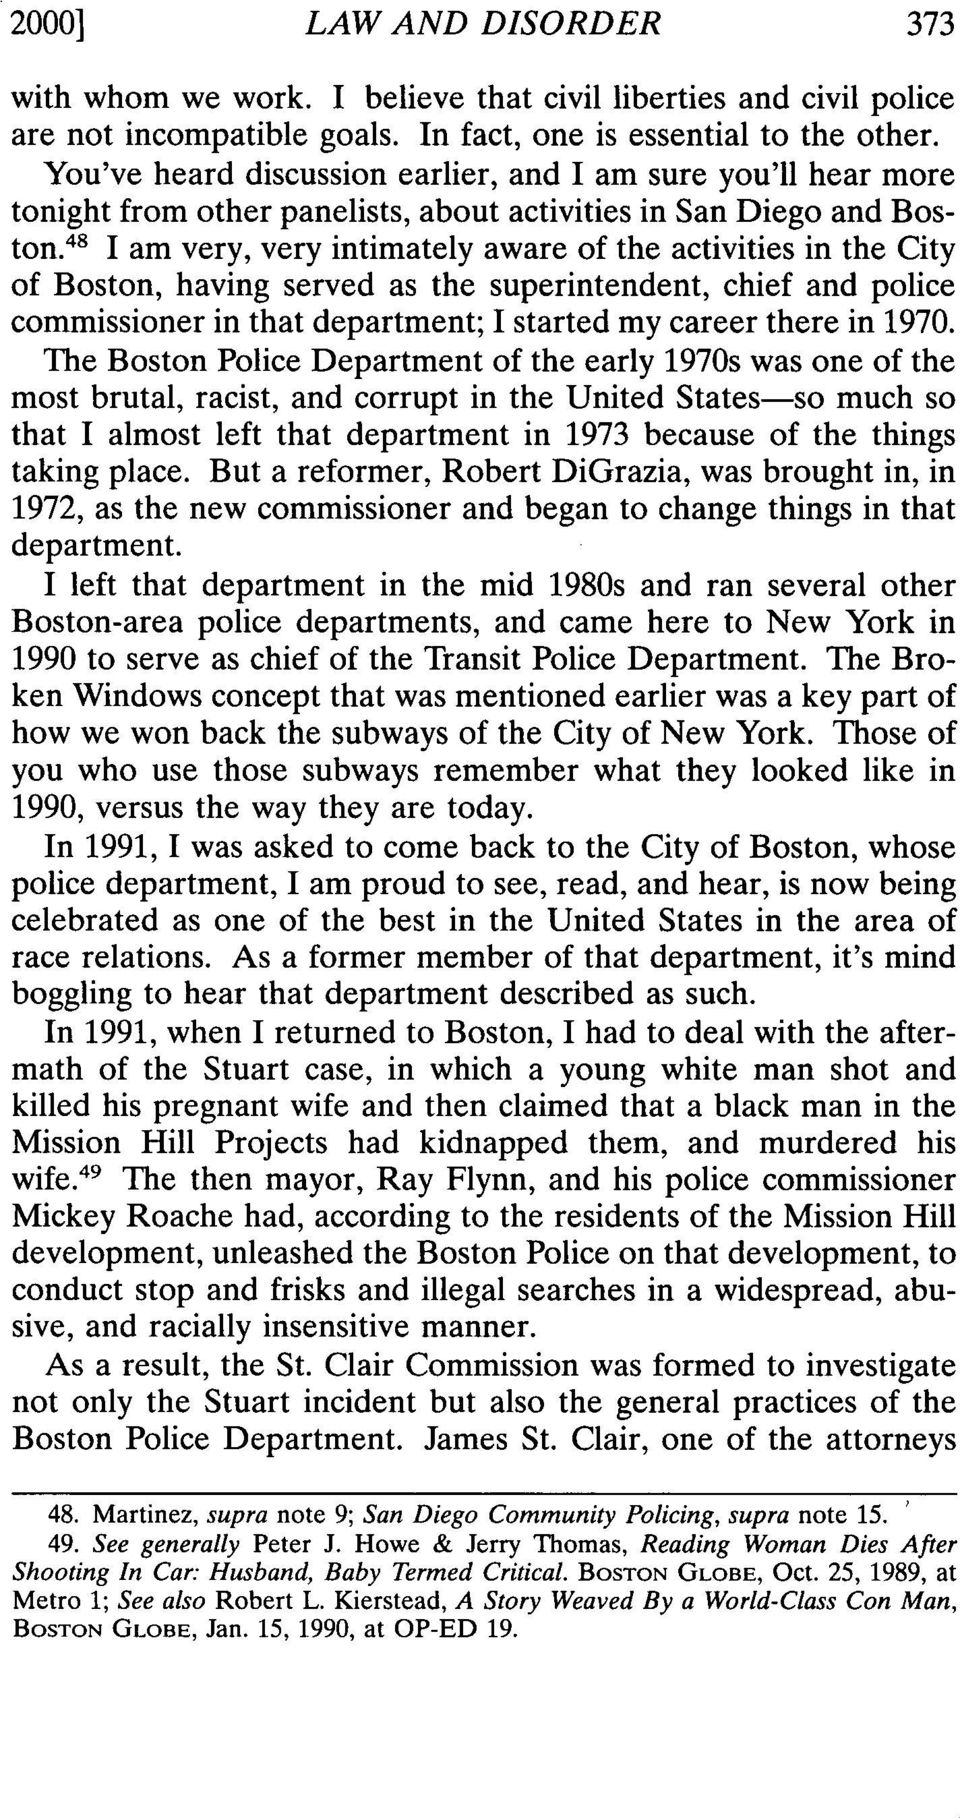 48 I am very, very intimately aware of the activities in the City of Boston, having served as the superintendent, chief and police commissioner in that department; I started my career there in 1970.